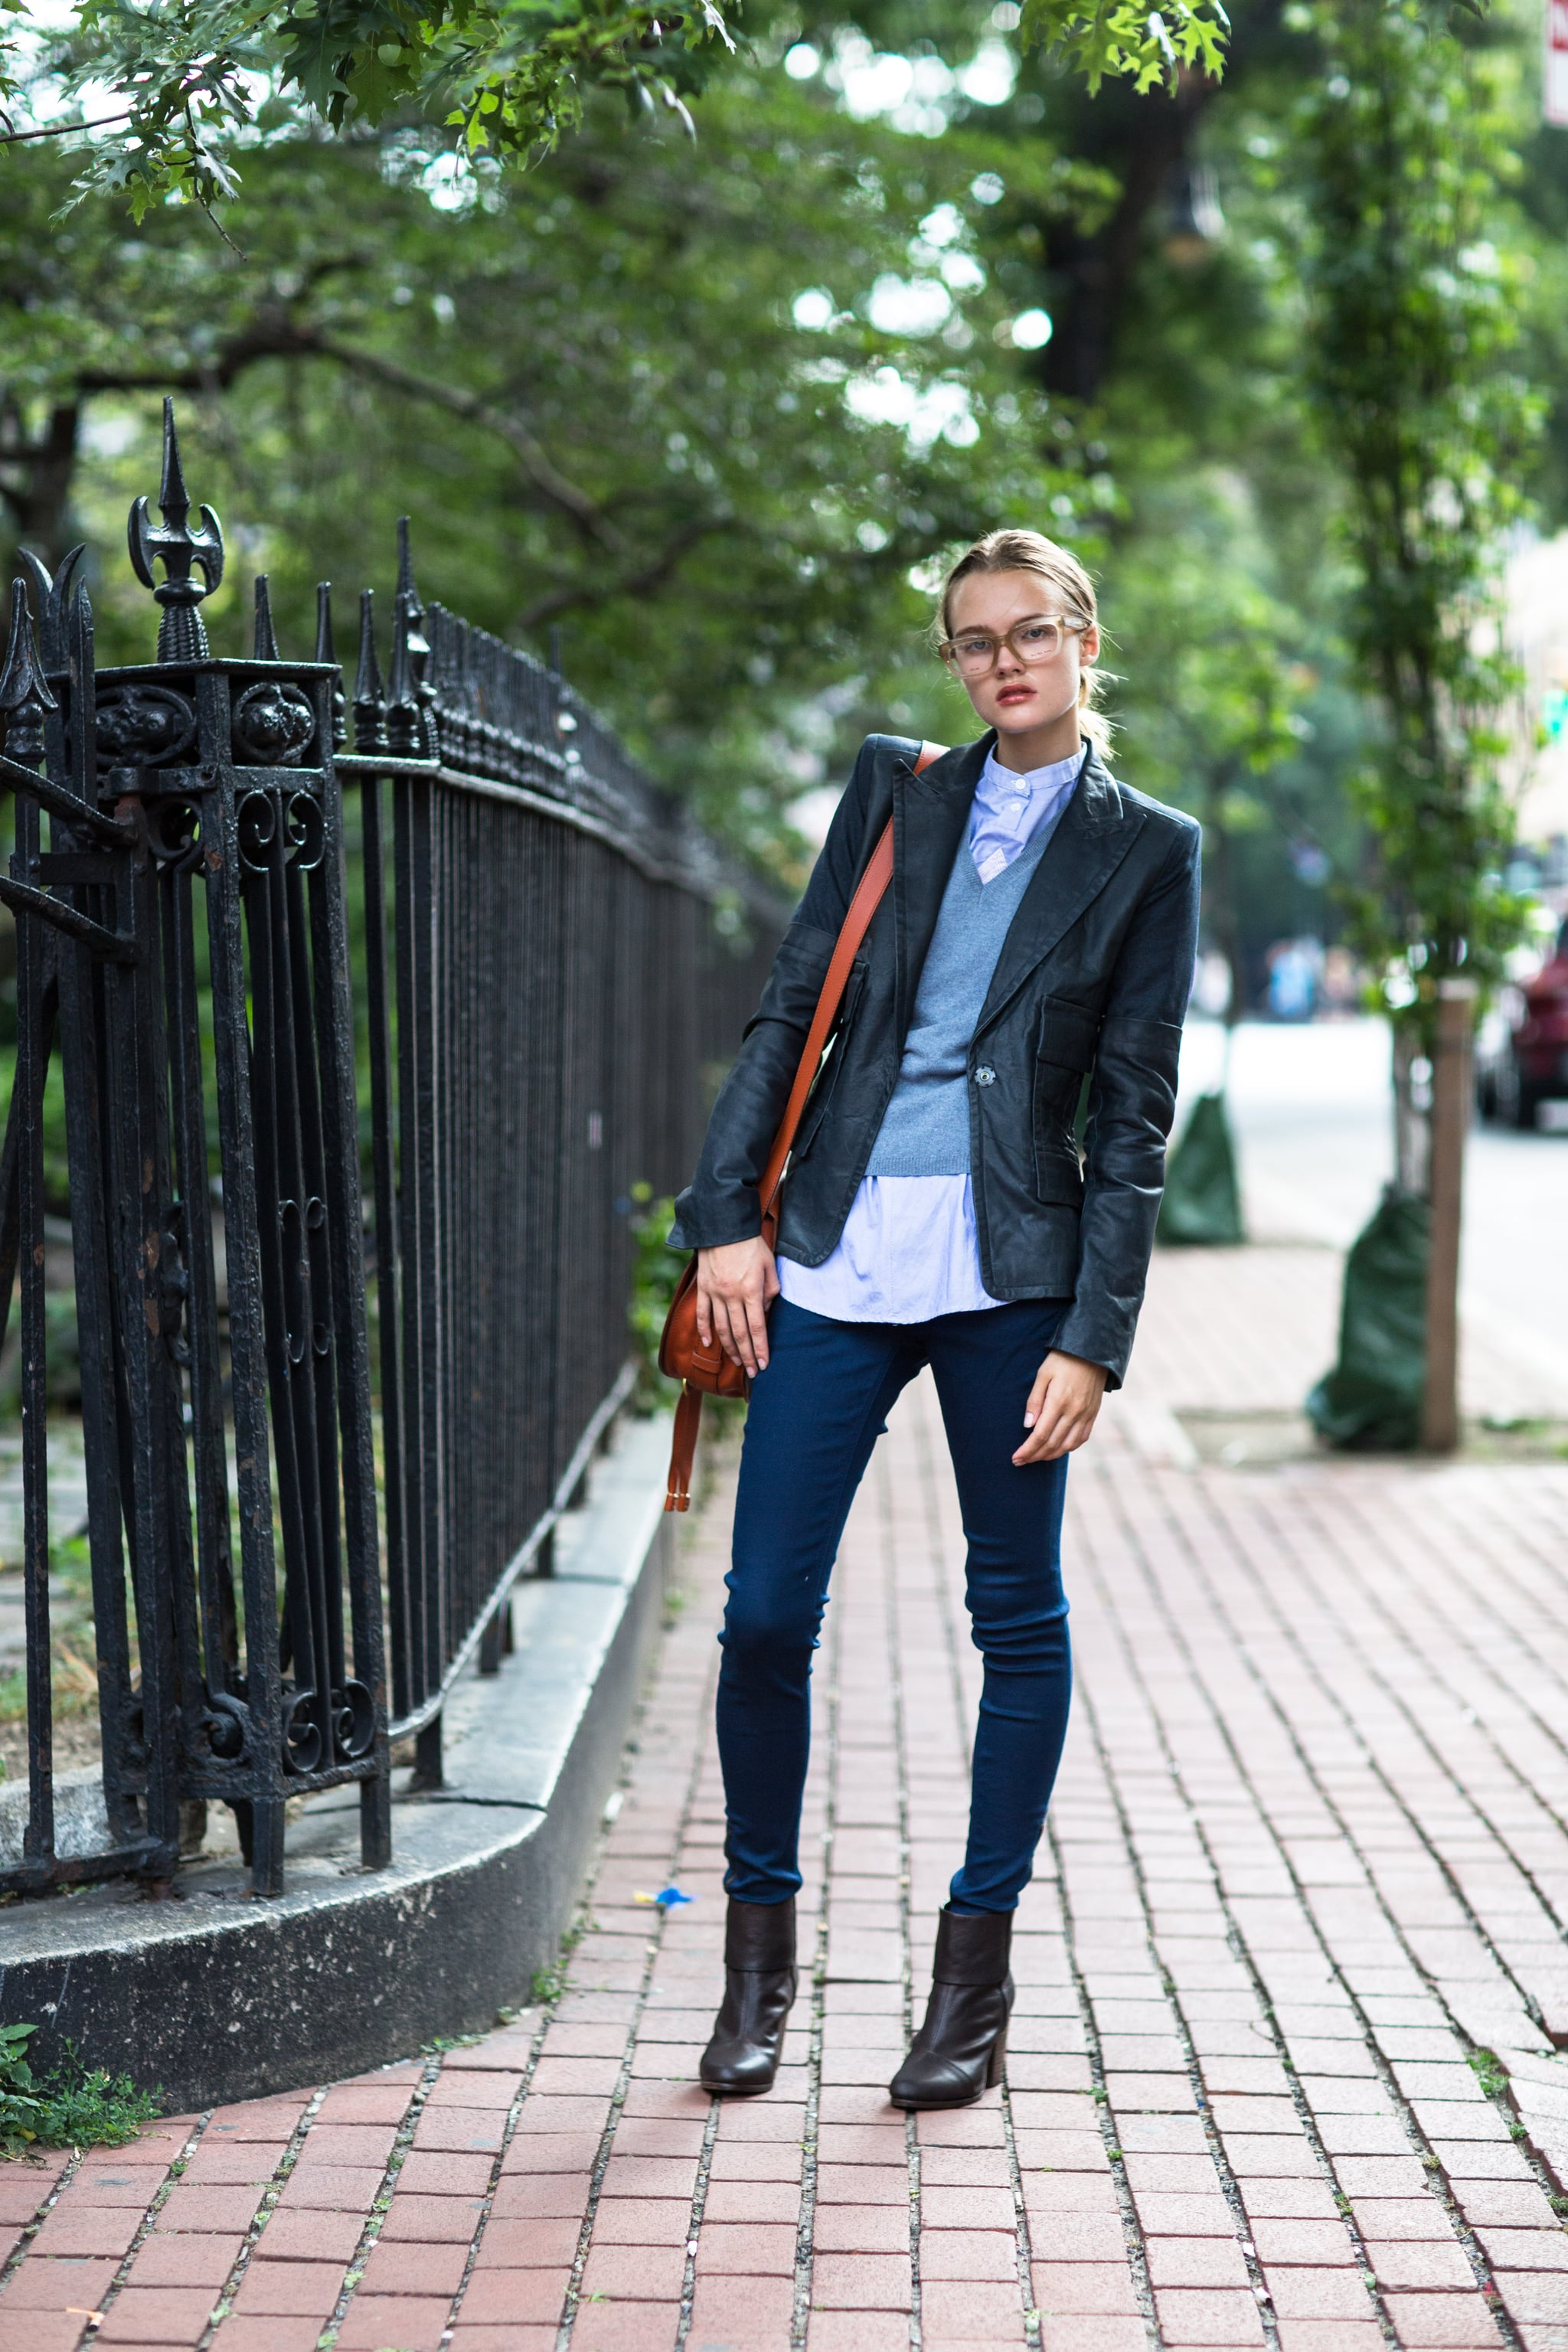 Refresh a bookish look with layers and geeky-chic specs. Source: Le 21ème | Adam Katz Sinding